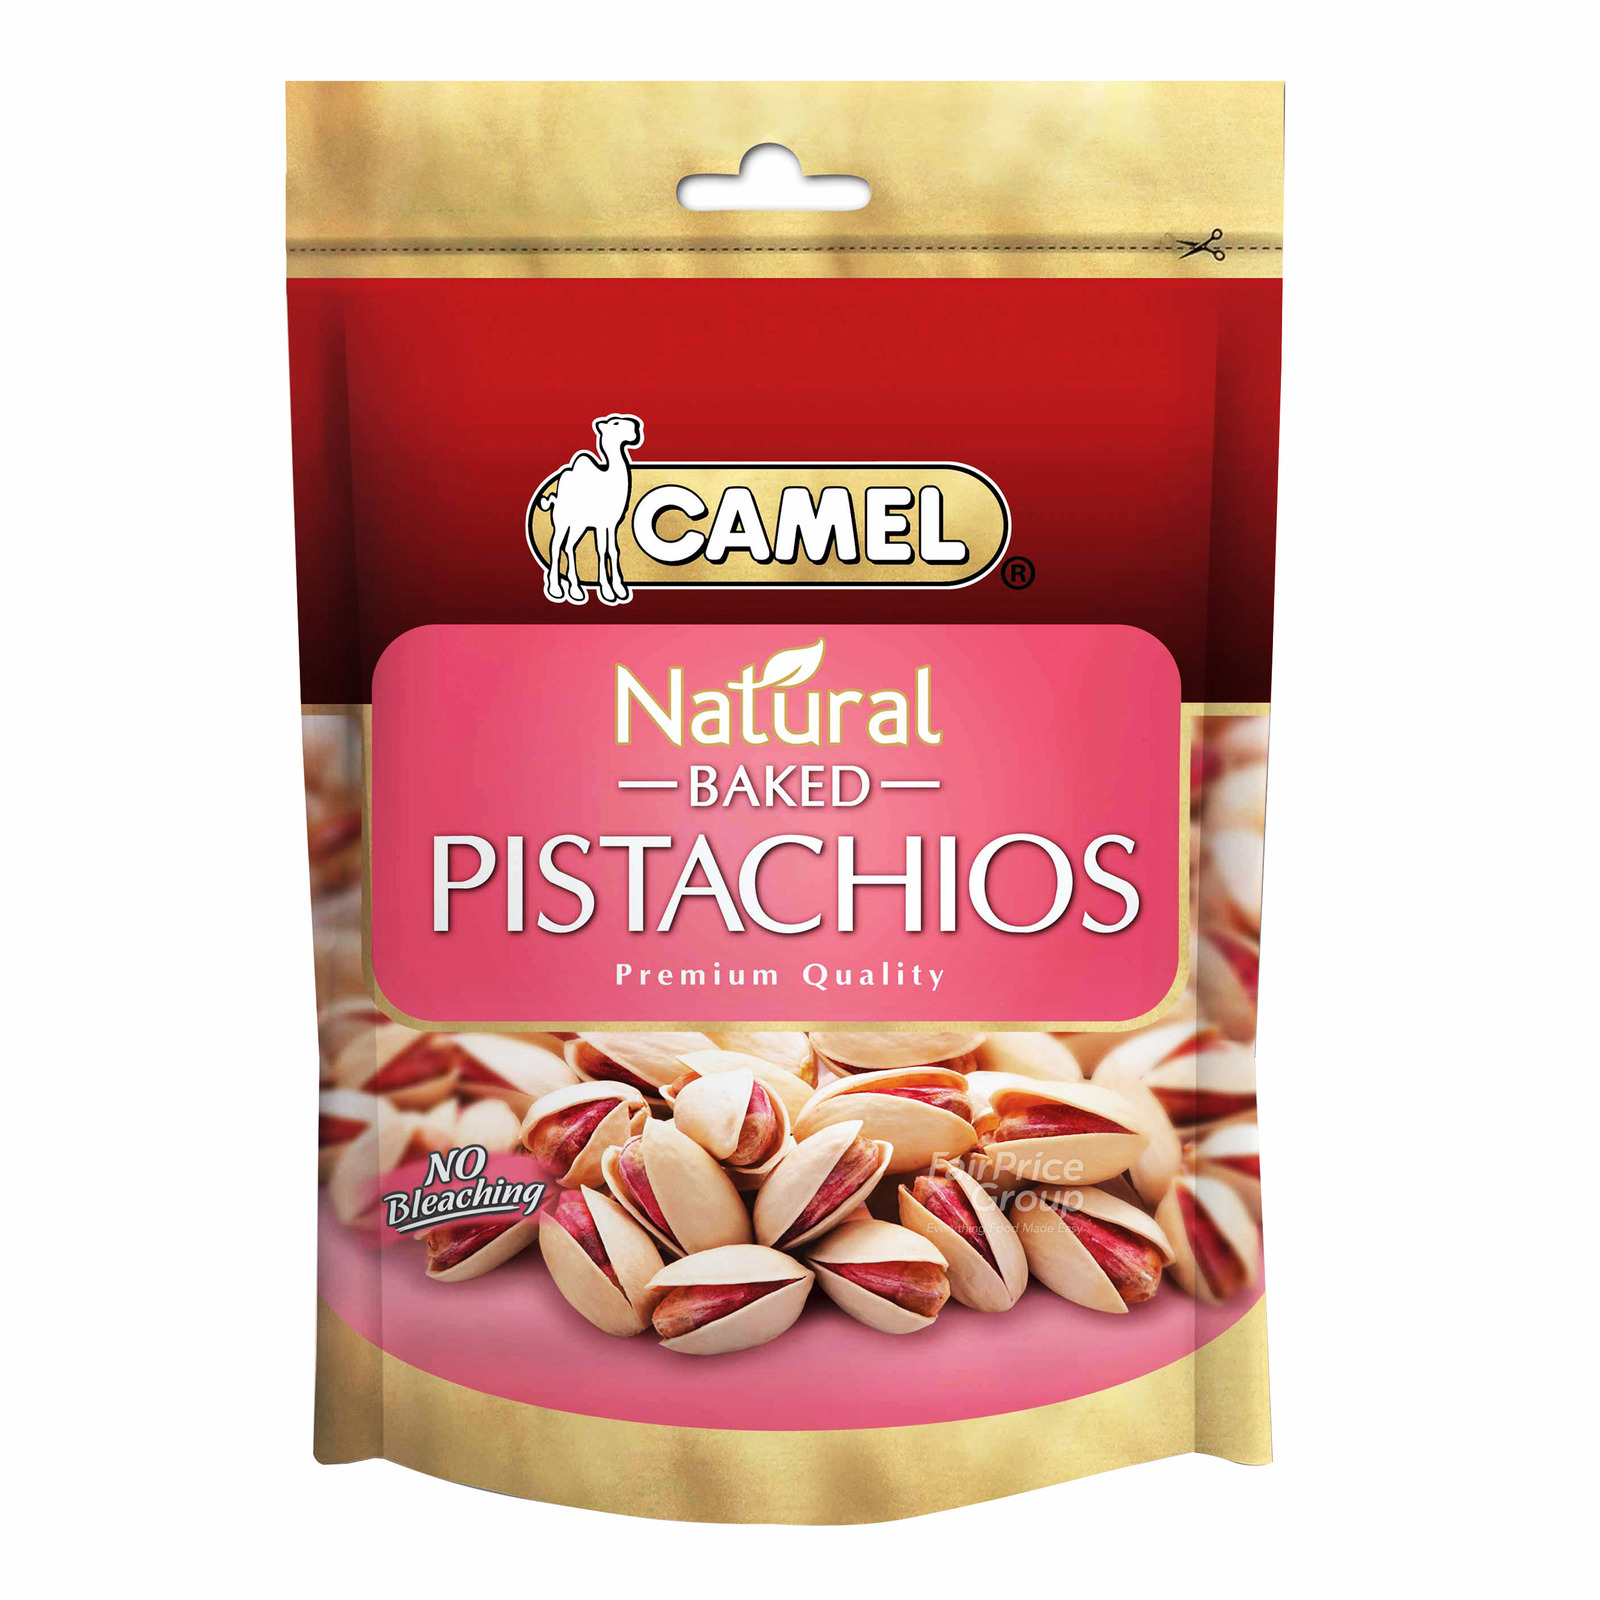 Camel Natural Baked Pistachios